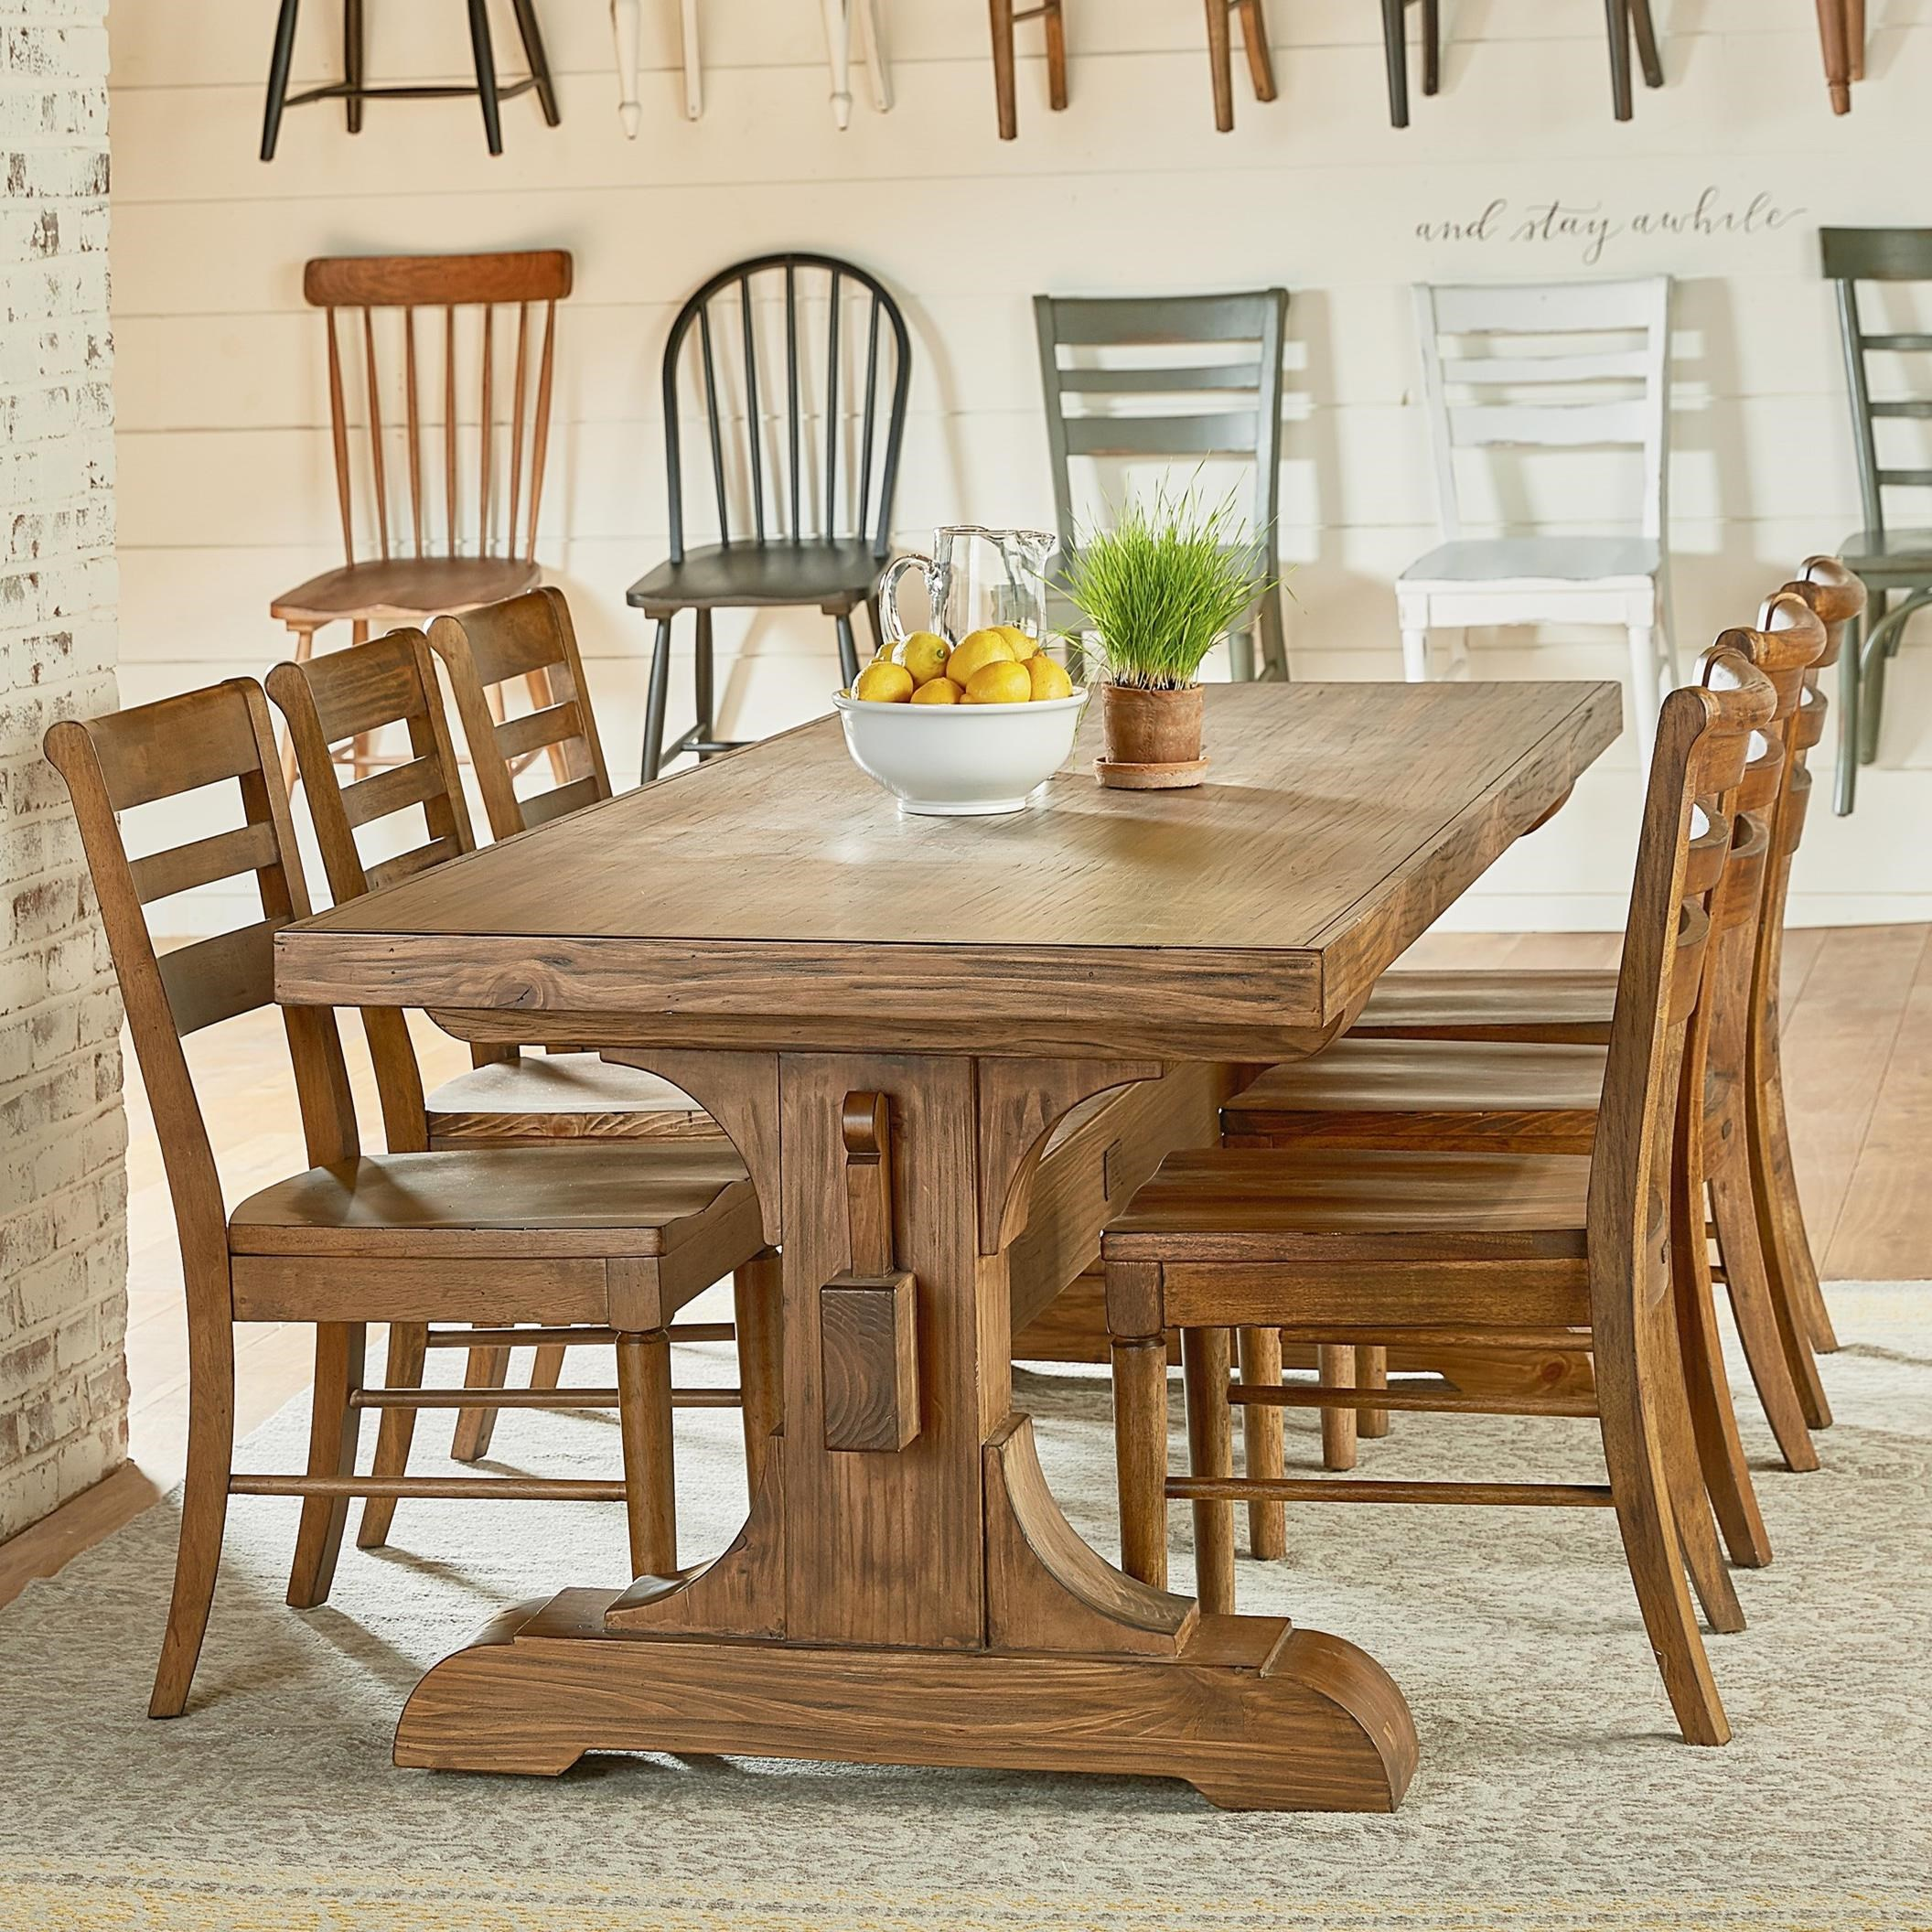 Magnolia home by joanna gaines farmhouse seven piece for Magnolia dining table